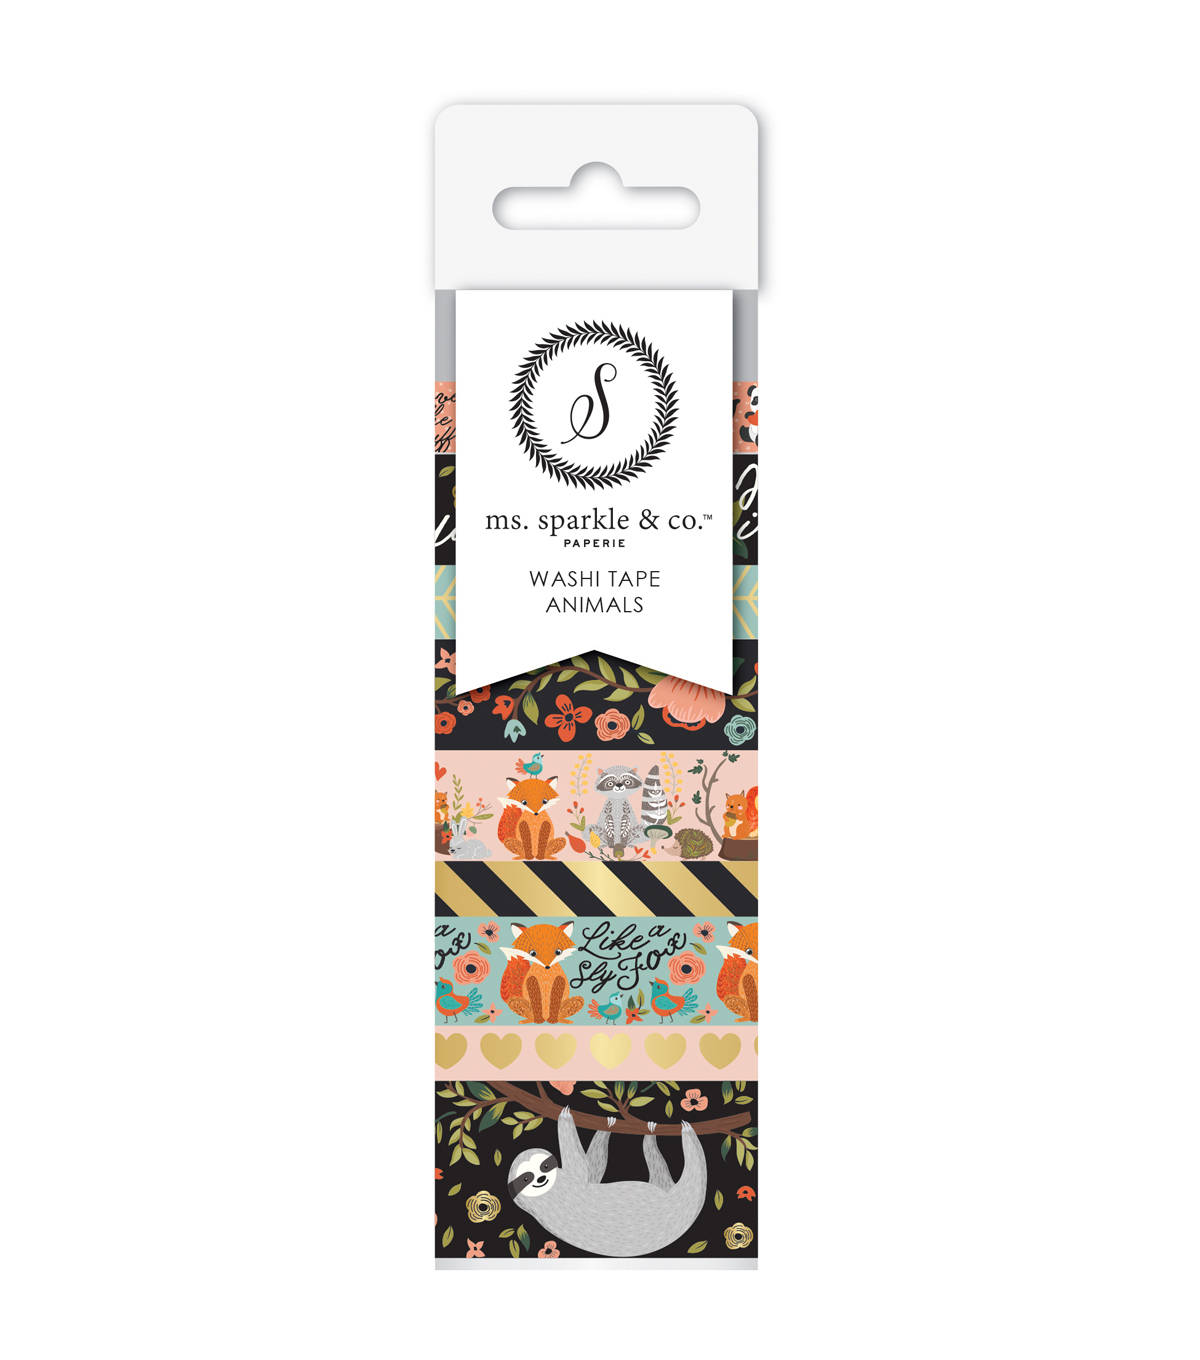 Ms. Sparkle & Co. 9 pk Washi Tapes-Animals